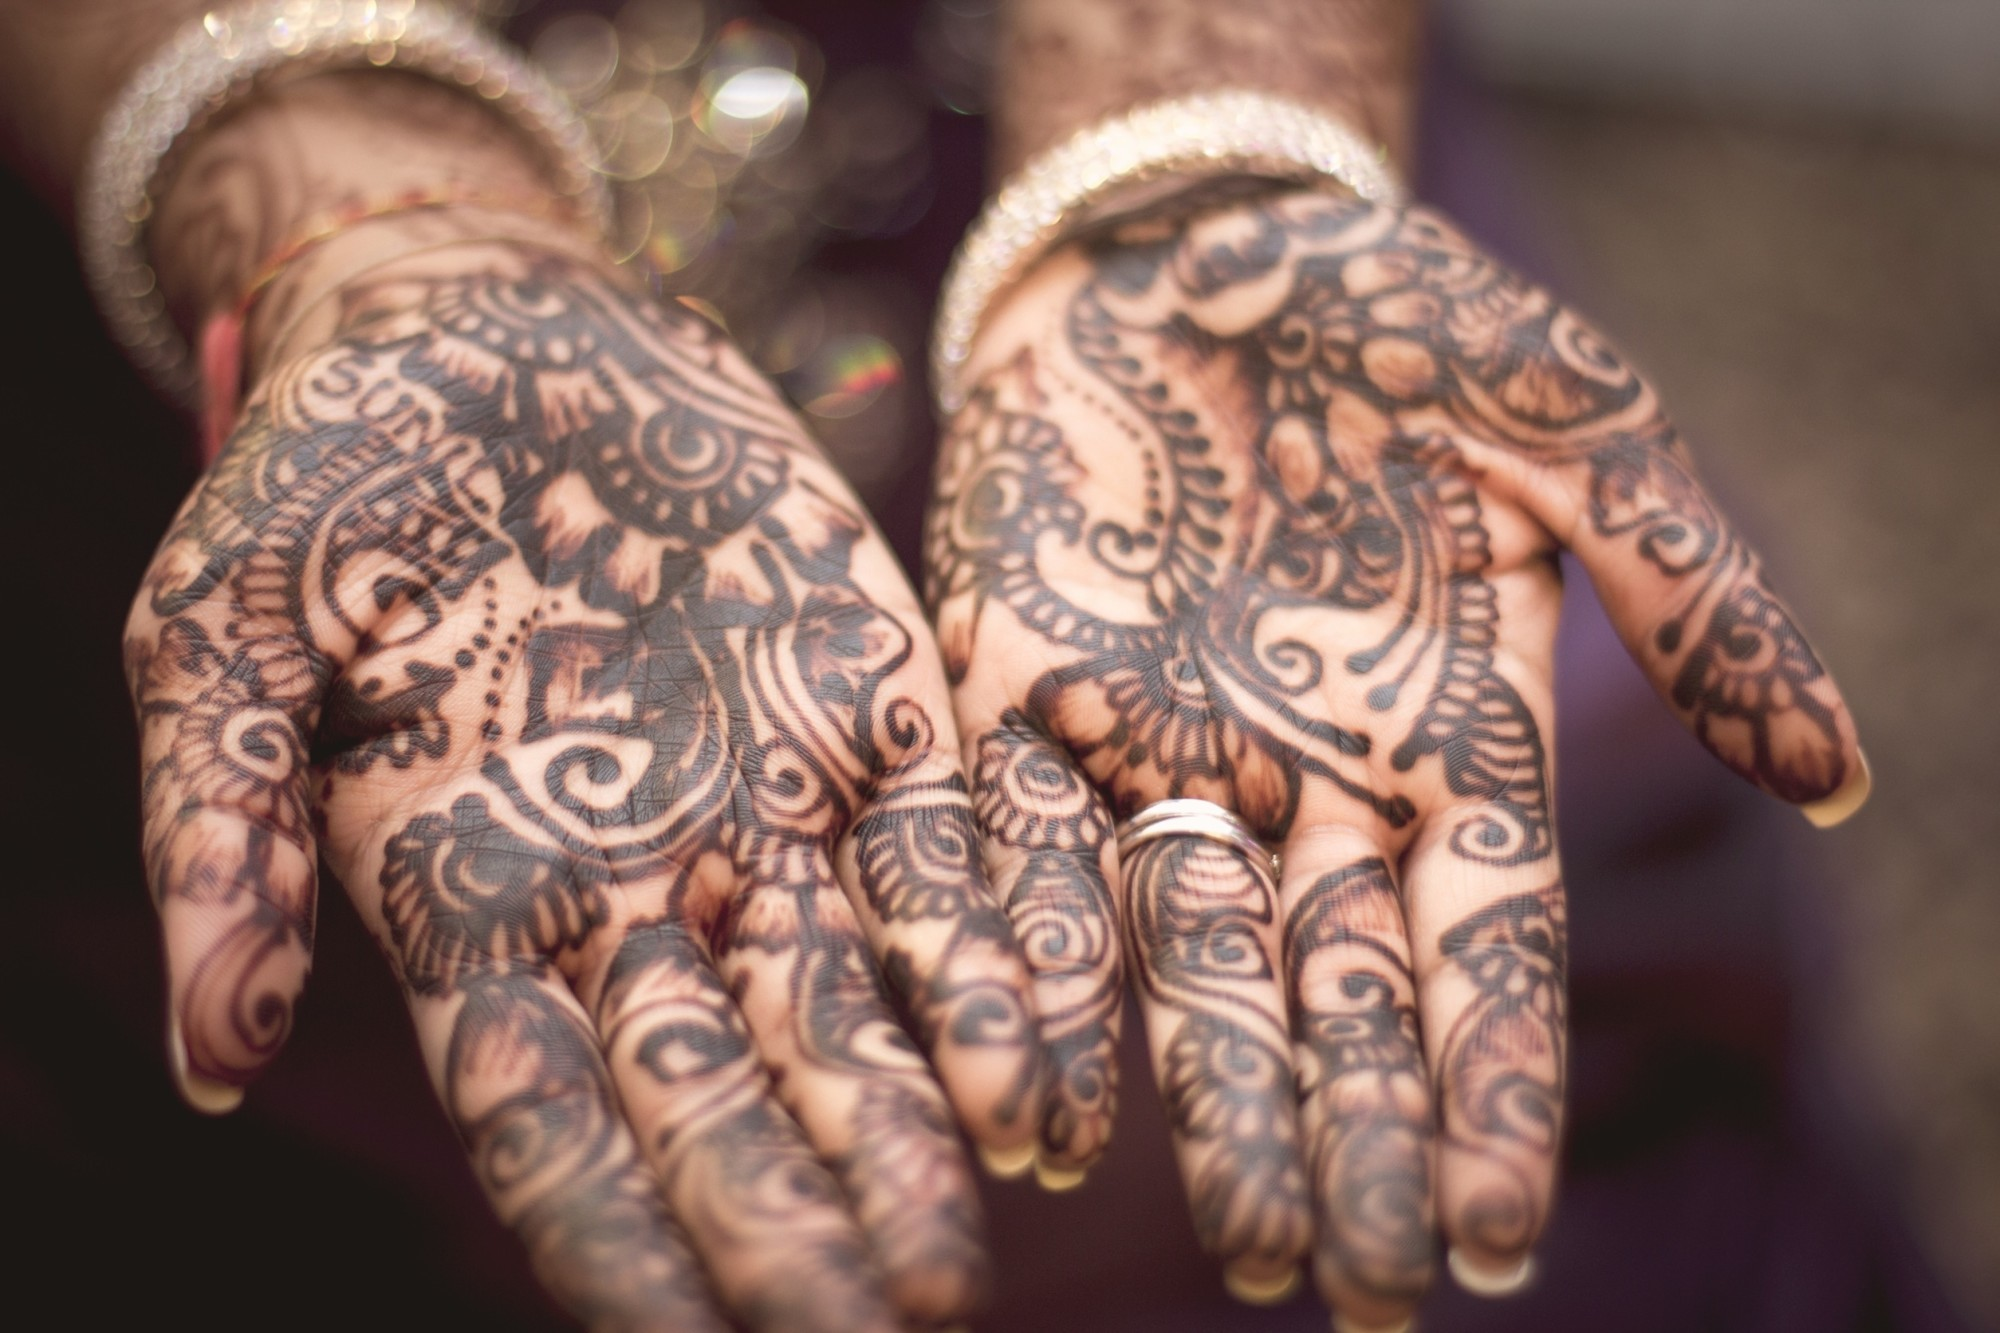 Can Henna Tattoos Become Permanent?